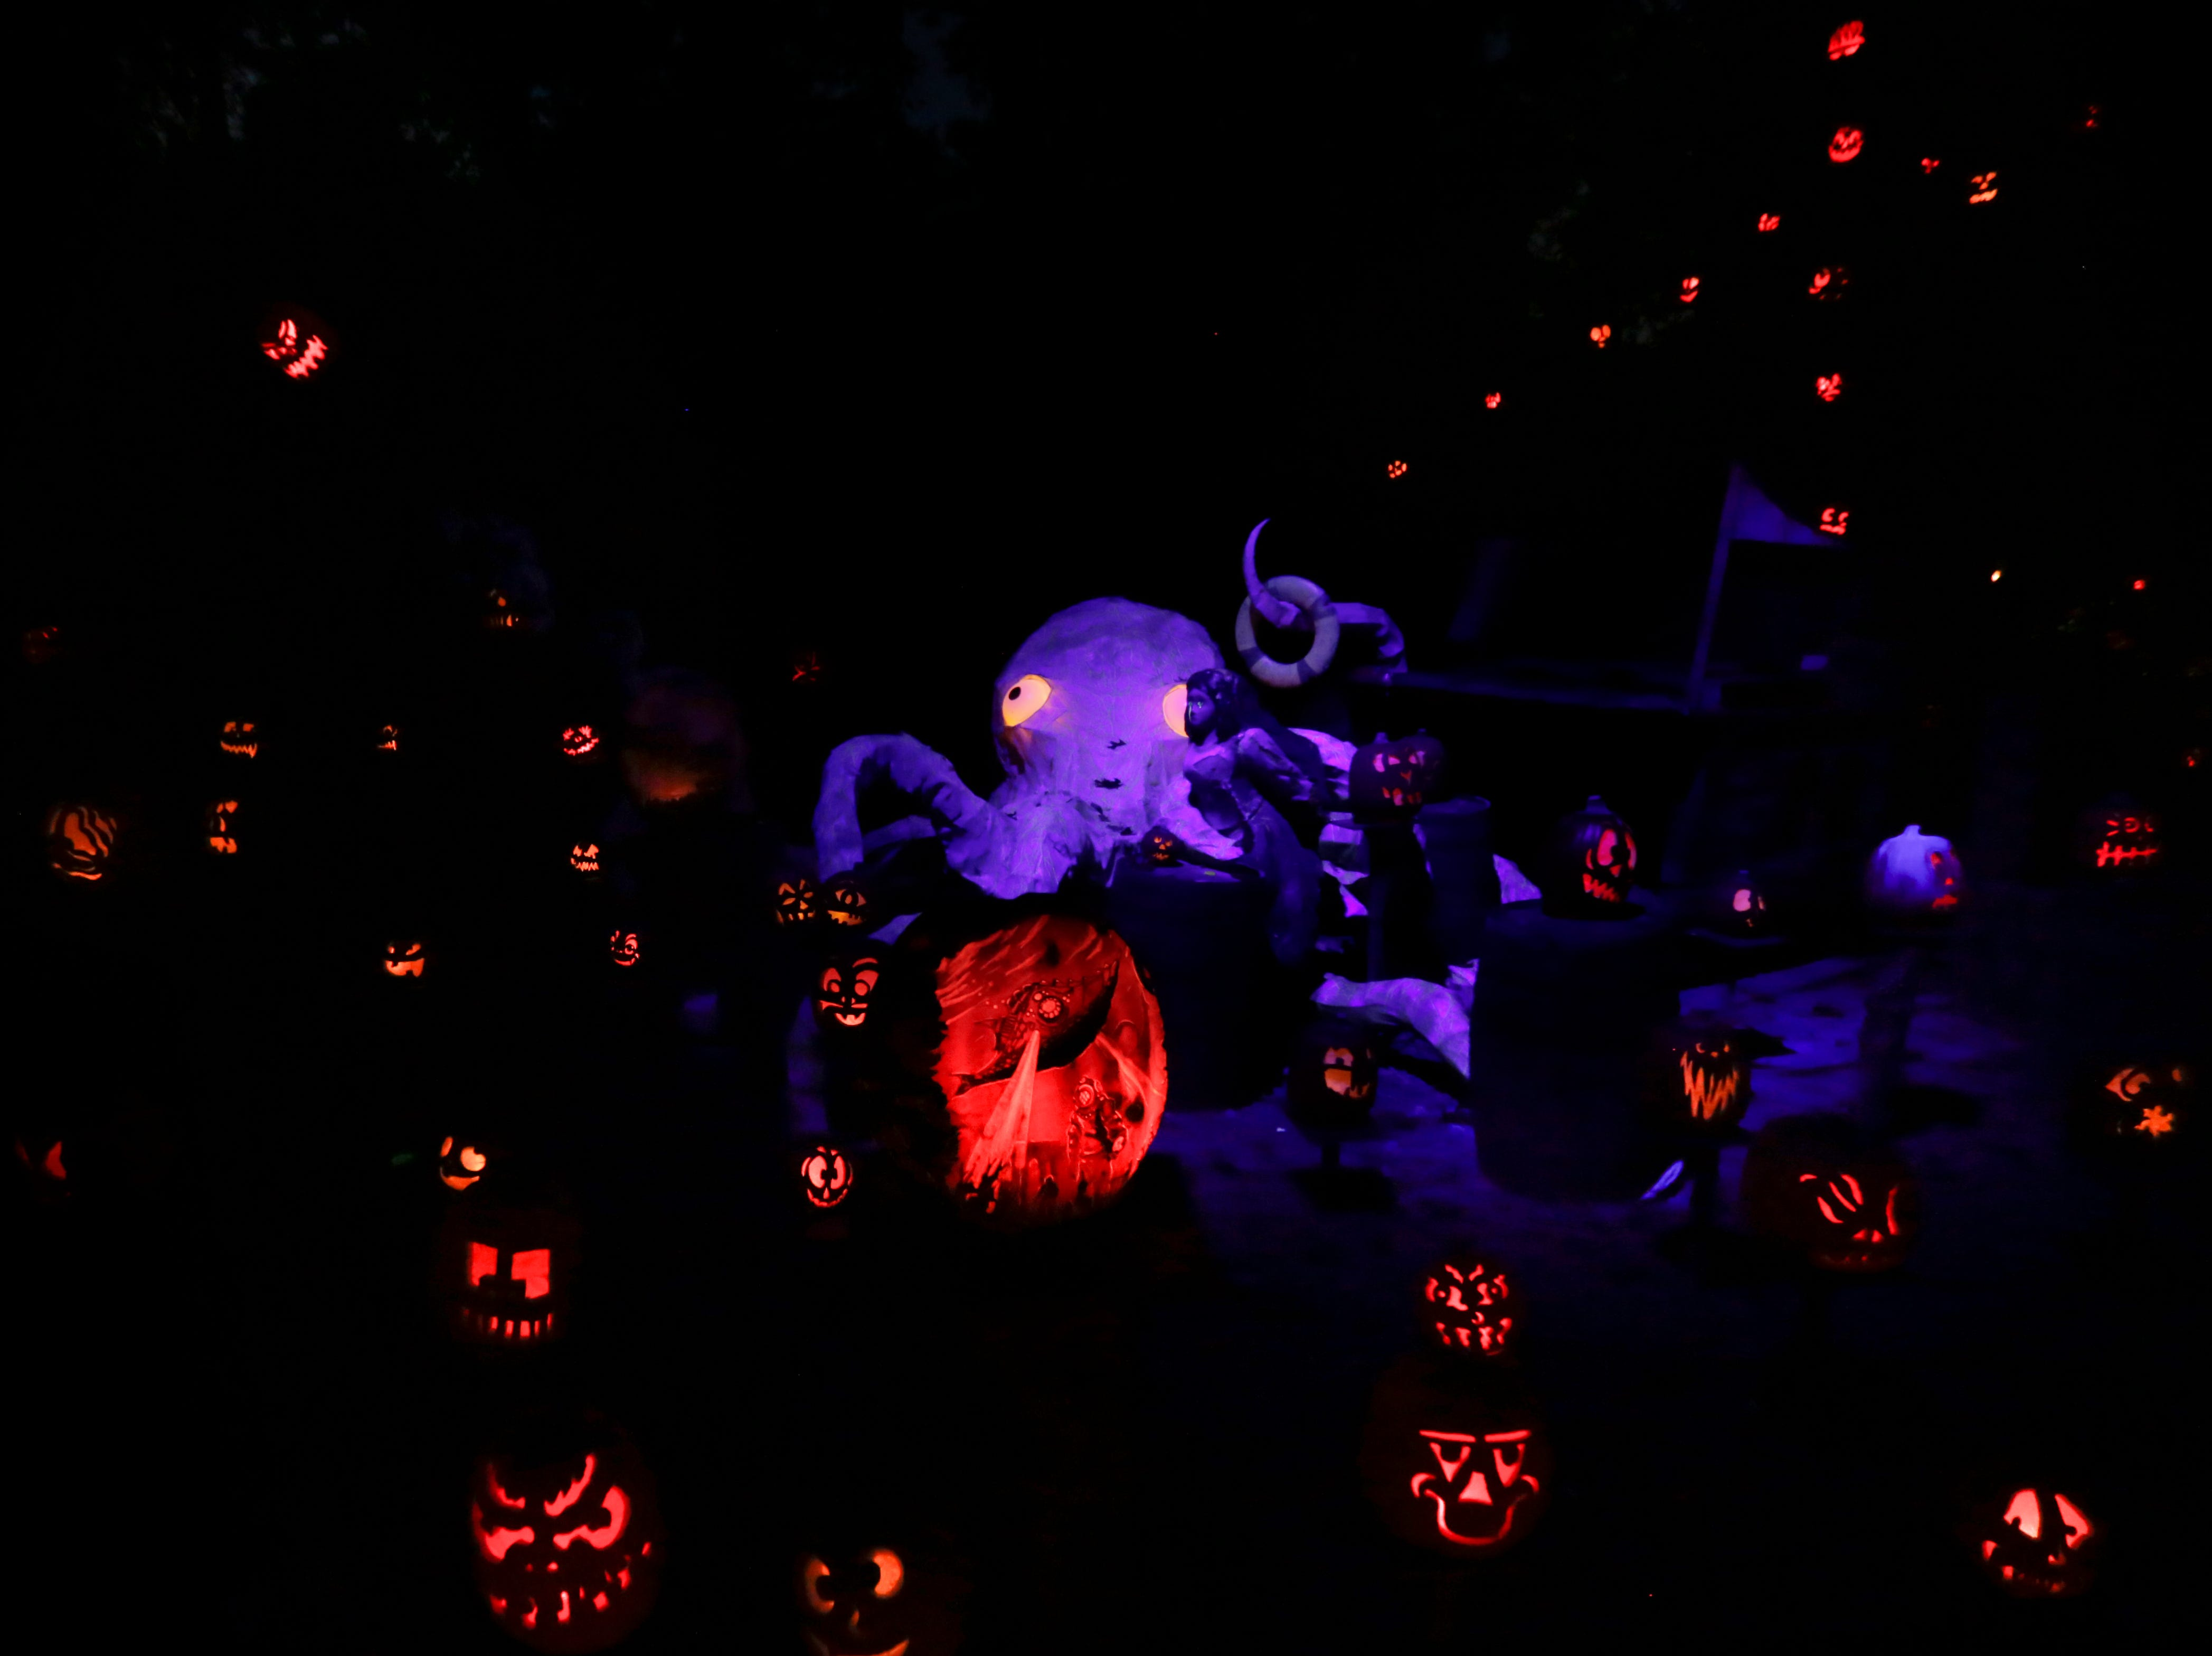 Scenes at this year's Jack O' Lantern Spectacular. Oct. 9, 2018